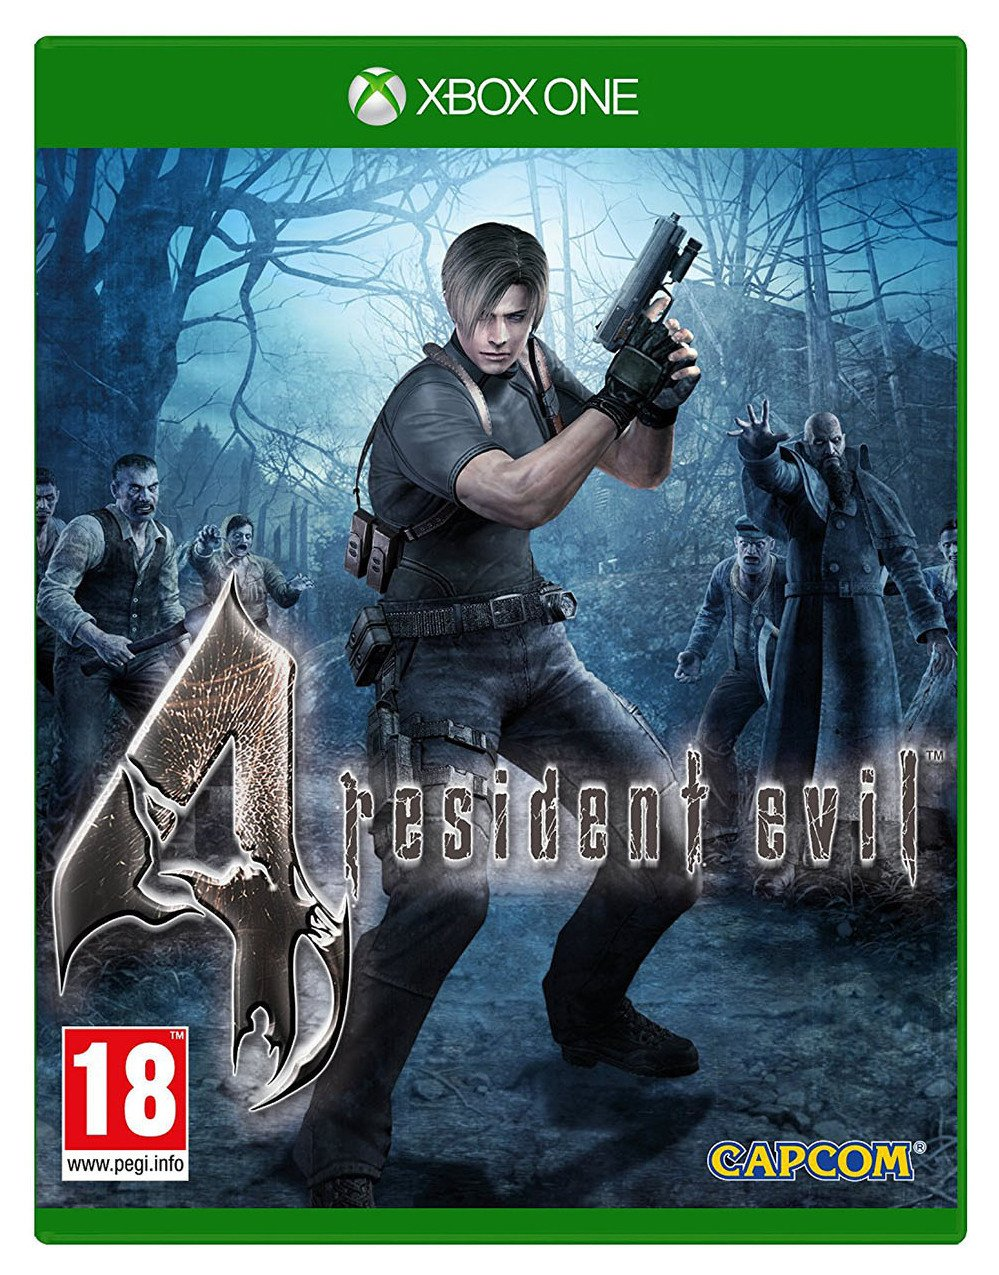 Image of Resident Evil 4 Xbox One Game.